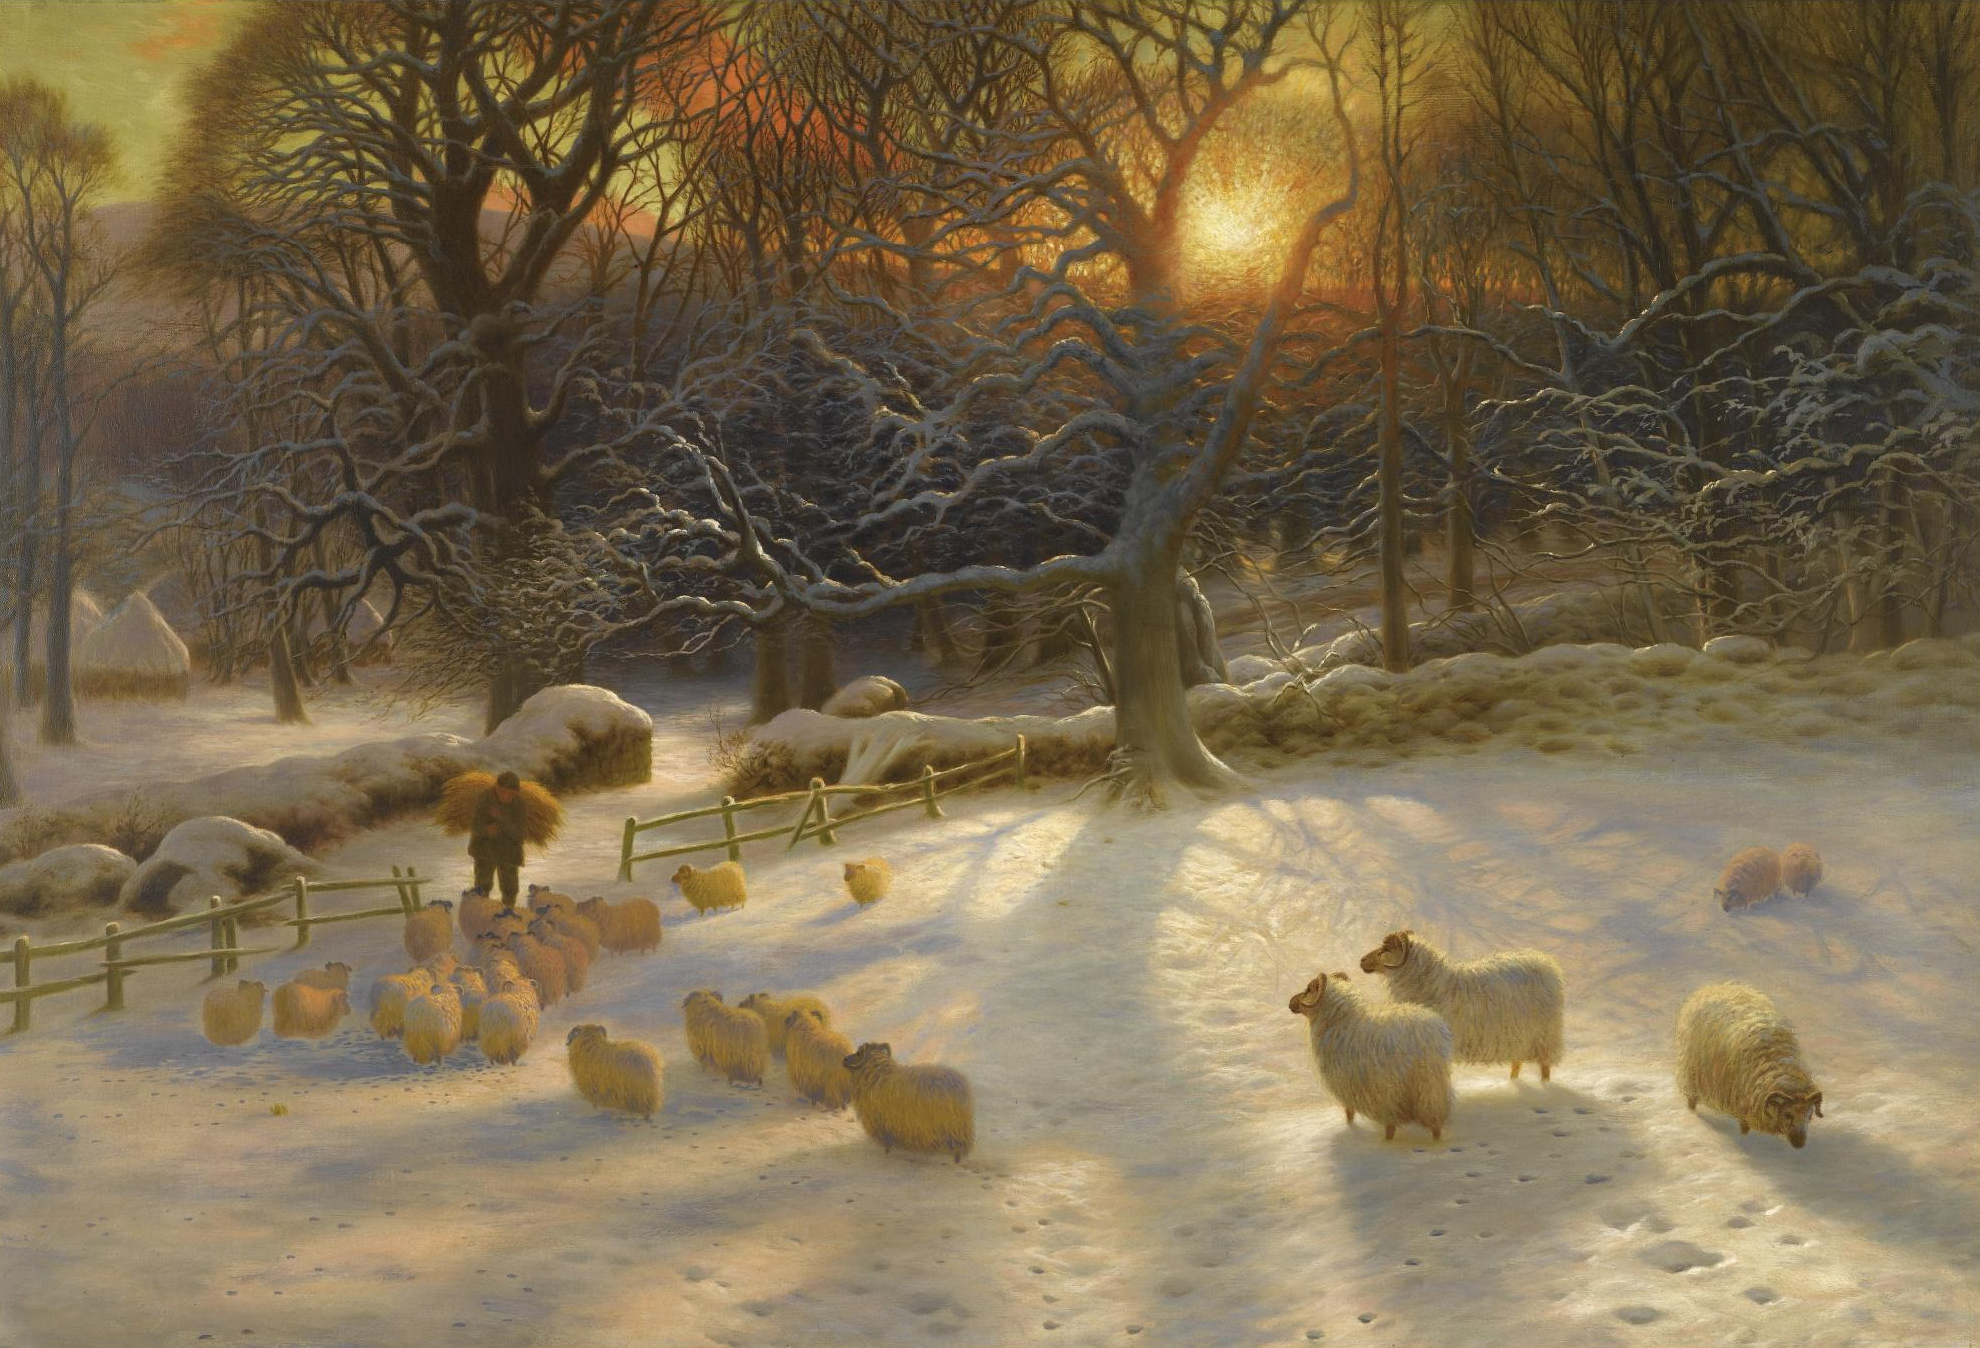 Joseph Farquharson: 'A Shortening Winter's Day is Near a Close' (1903)(from Wikimedia Commons)